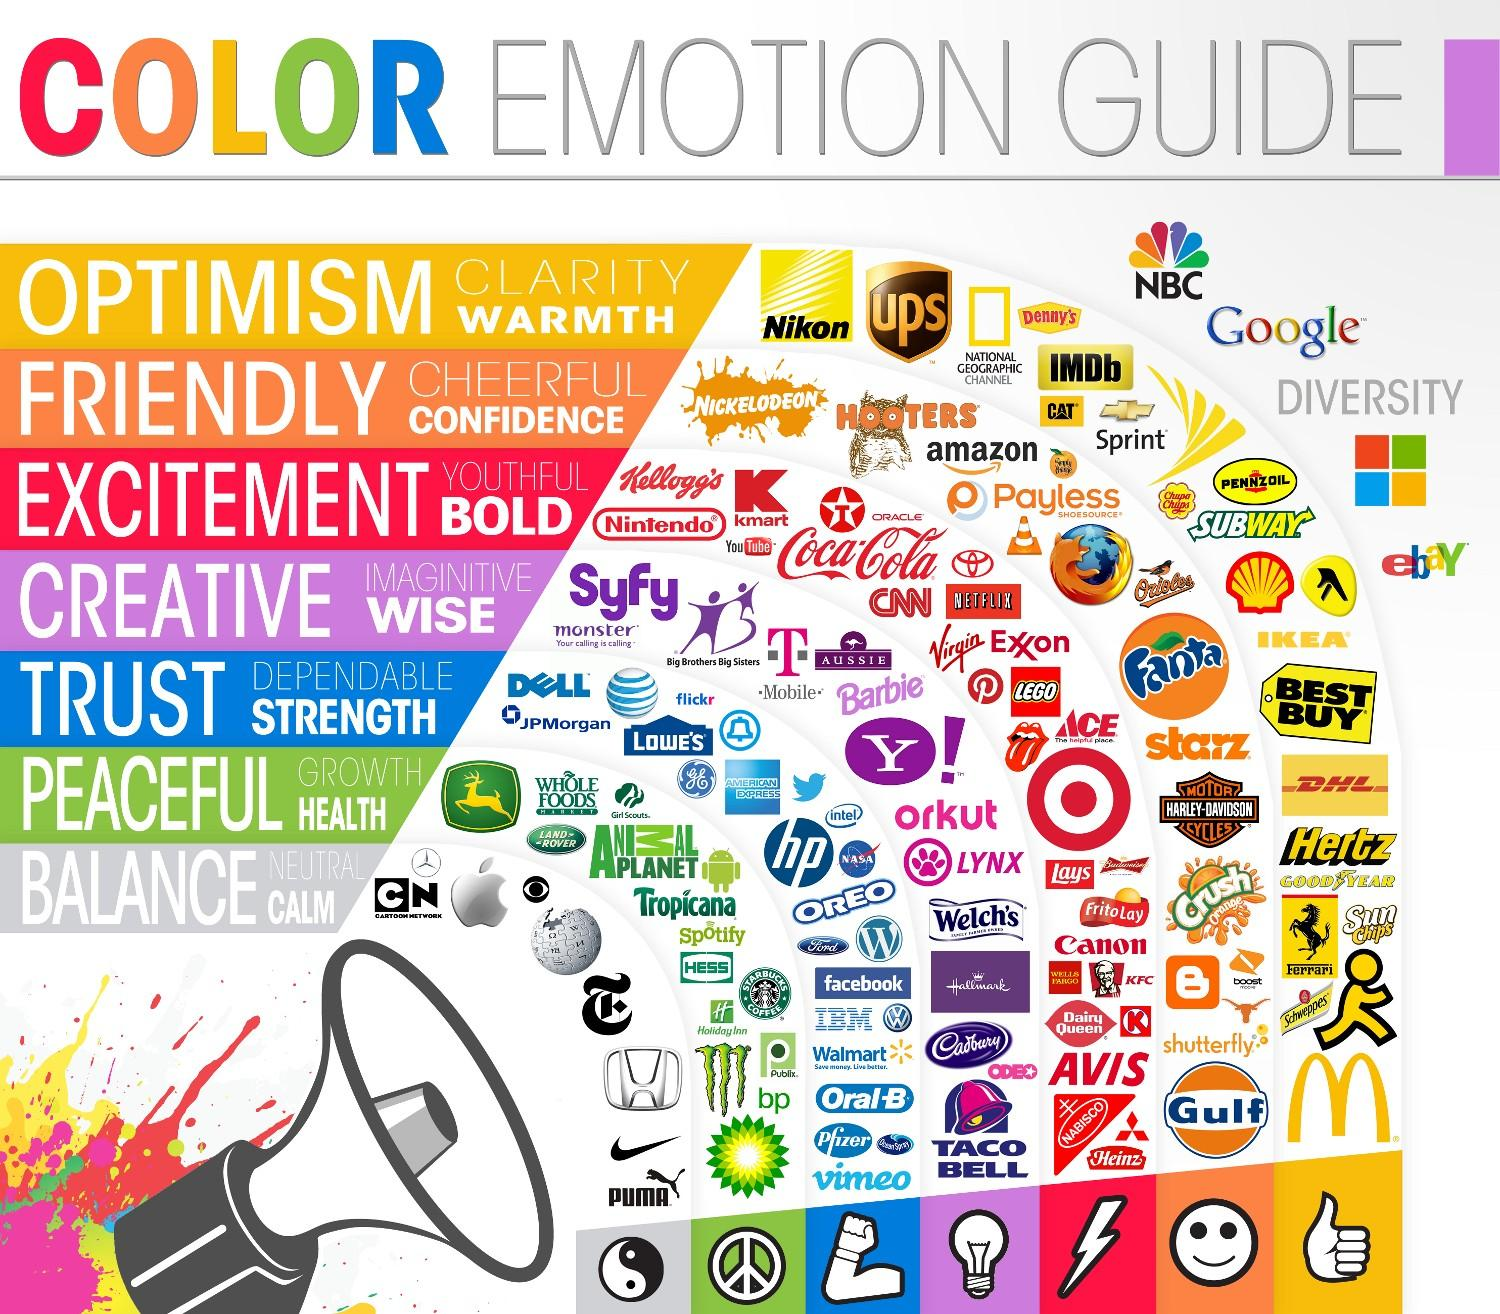 Bildergebnis für color emotion guide